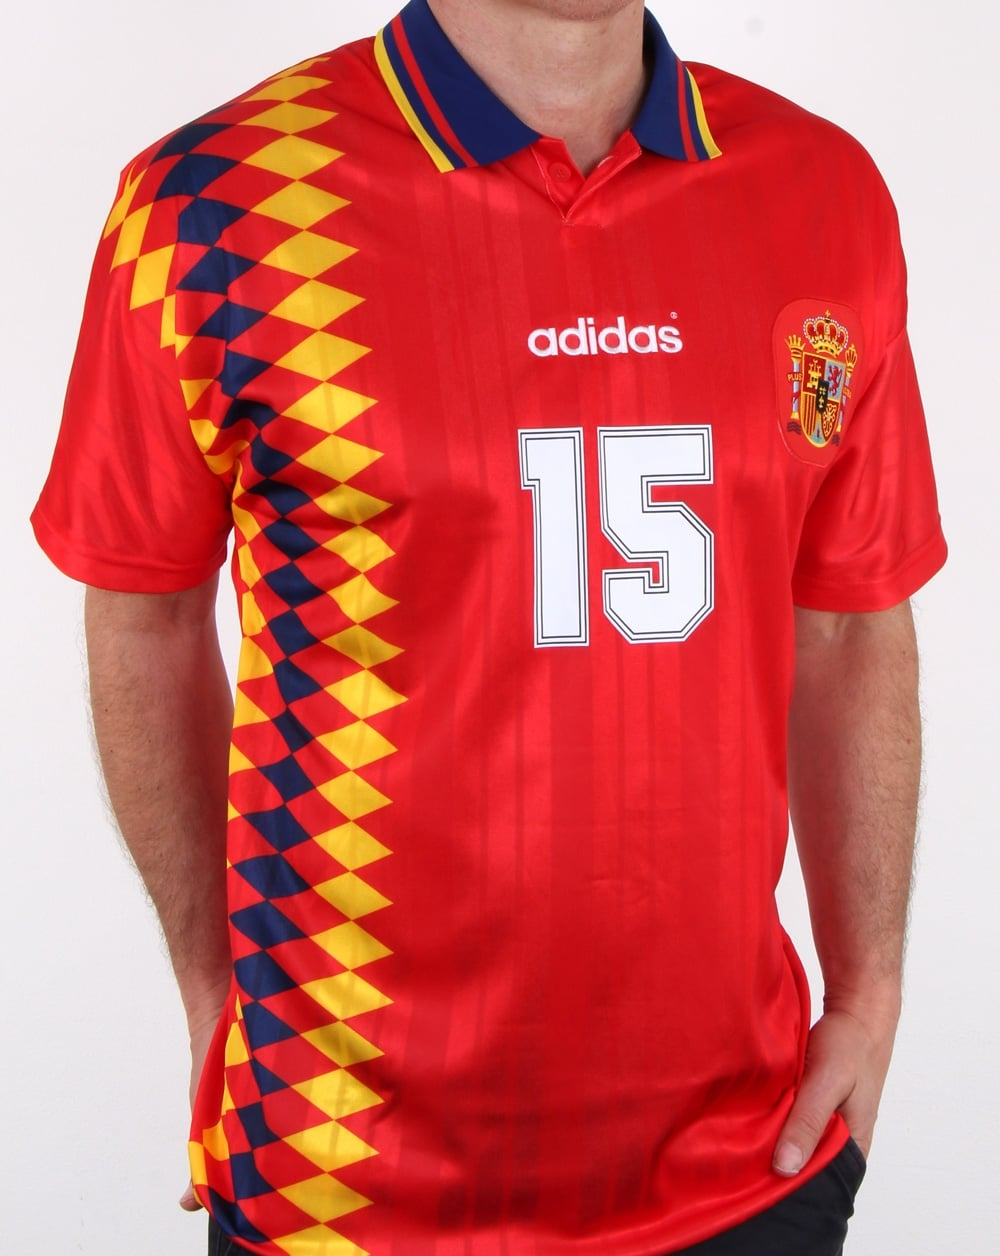 67341e732 Adidas Originals Spain Jersey Red, Mens, Football, World Cup, 1994